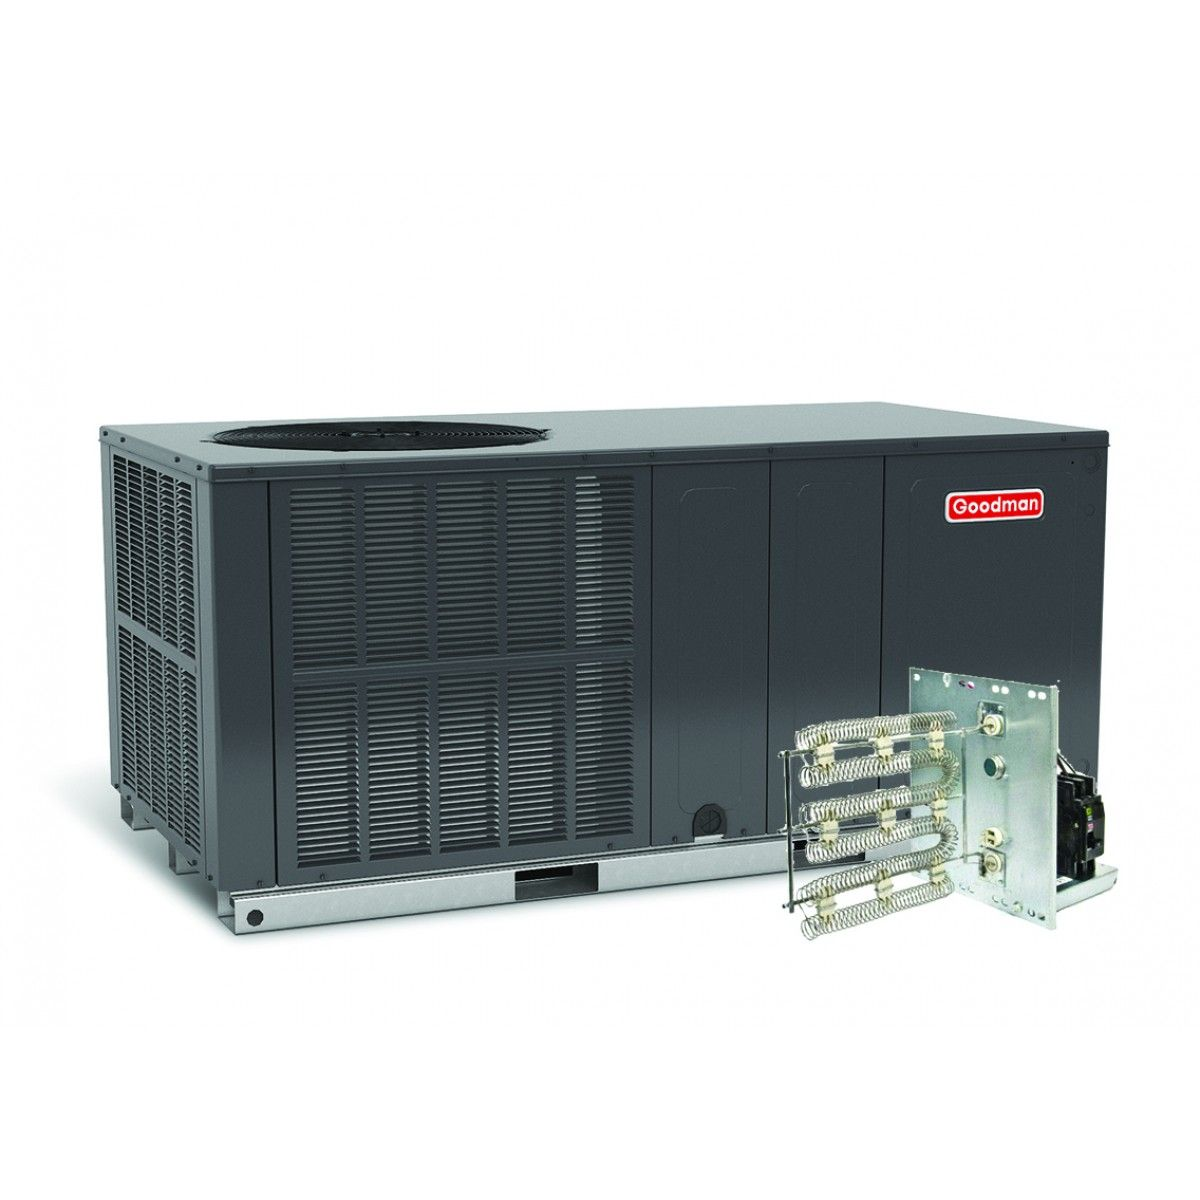 #B81315 Goodman 4.0 Ton 14 SEER Heat Pump Package Unit Horizontal  Most Effective 3055 Furnace And Ac Unit pictures with 1200x1200 px on helpvideos.info - Air Conditioners, Air Coolers and more